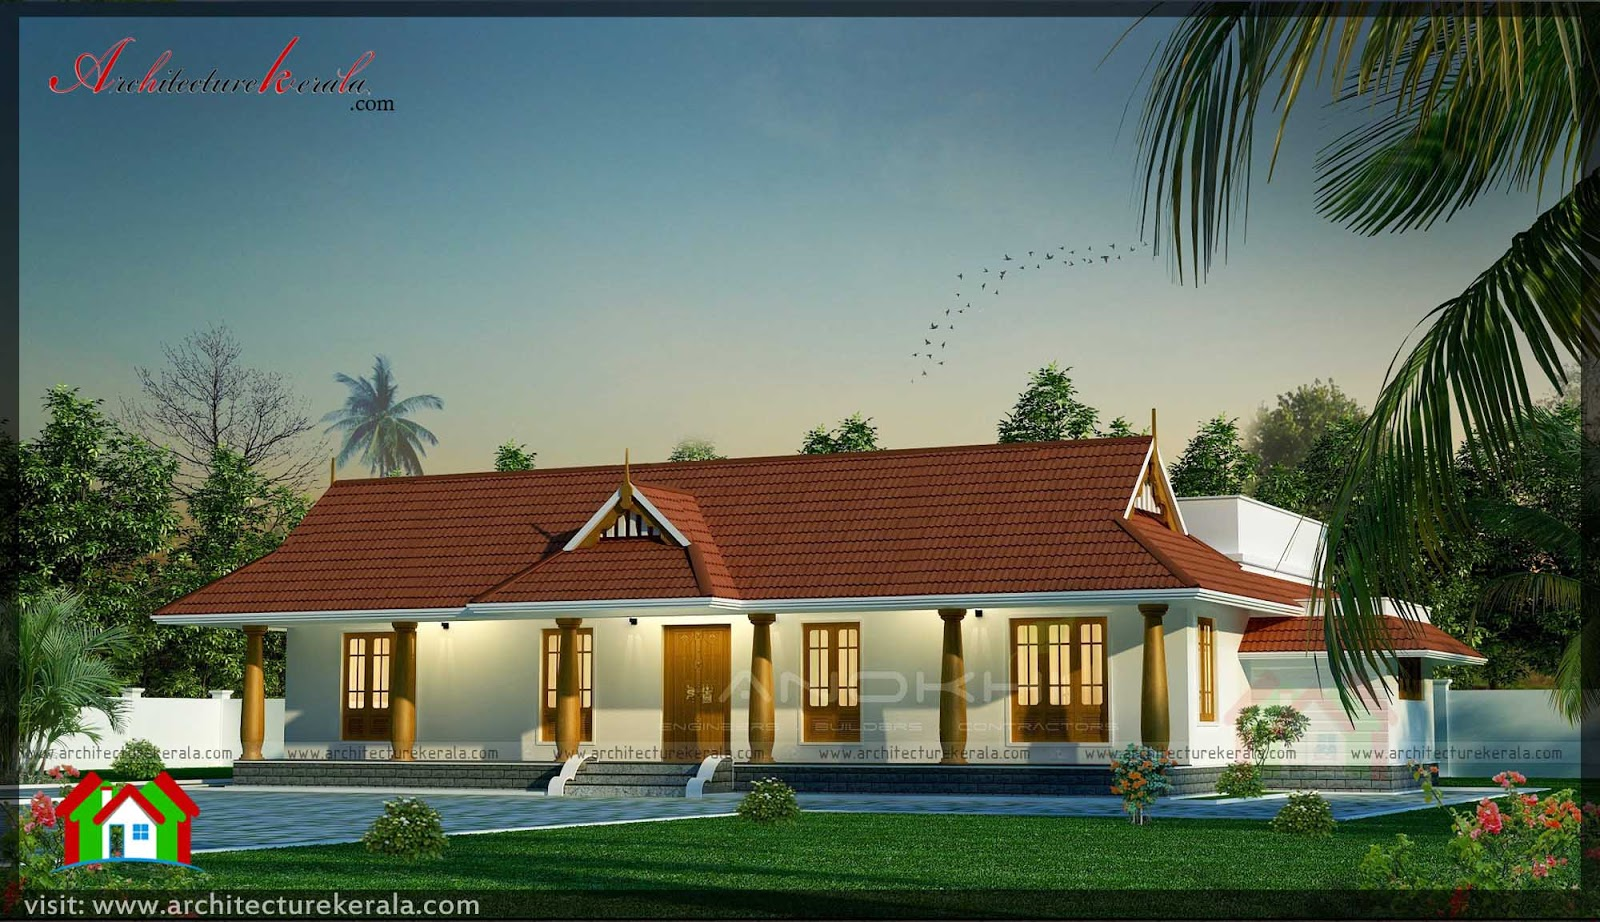 Kerala style house with nadumuttam architecture kerala for House design kerala style free